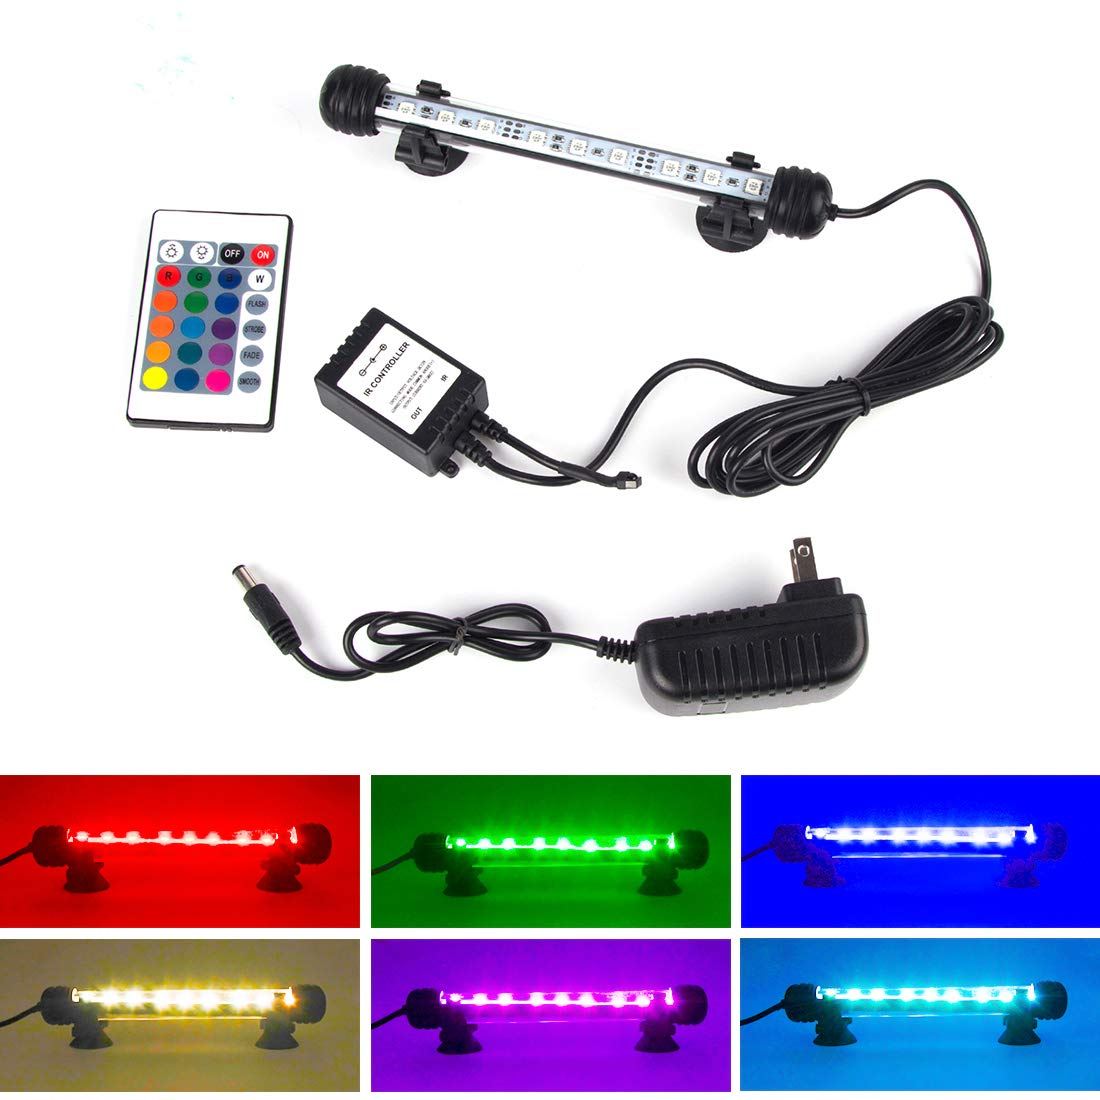 S SMIFUL Aquarium Light Fish Tank LED Lights Submersible Underwater Colorful Strip for Background Decorations Glofish Plant Lighting, 7.5'' - Colorful by S SMIFUL